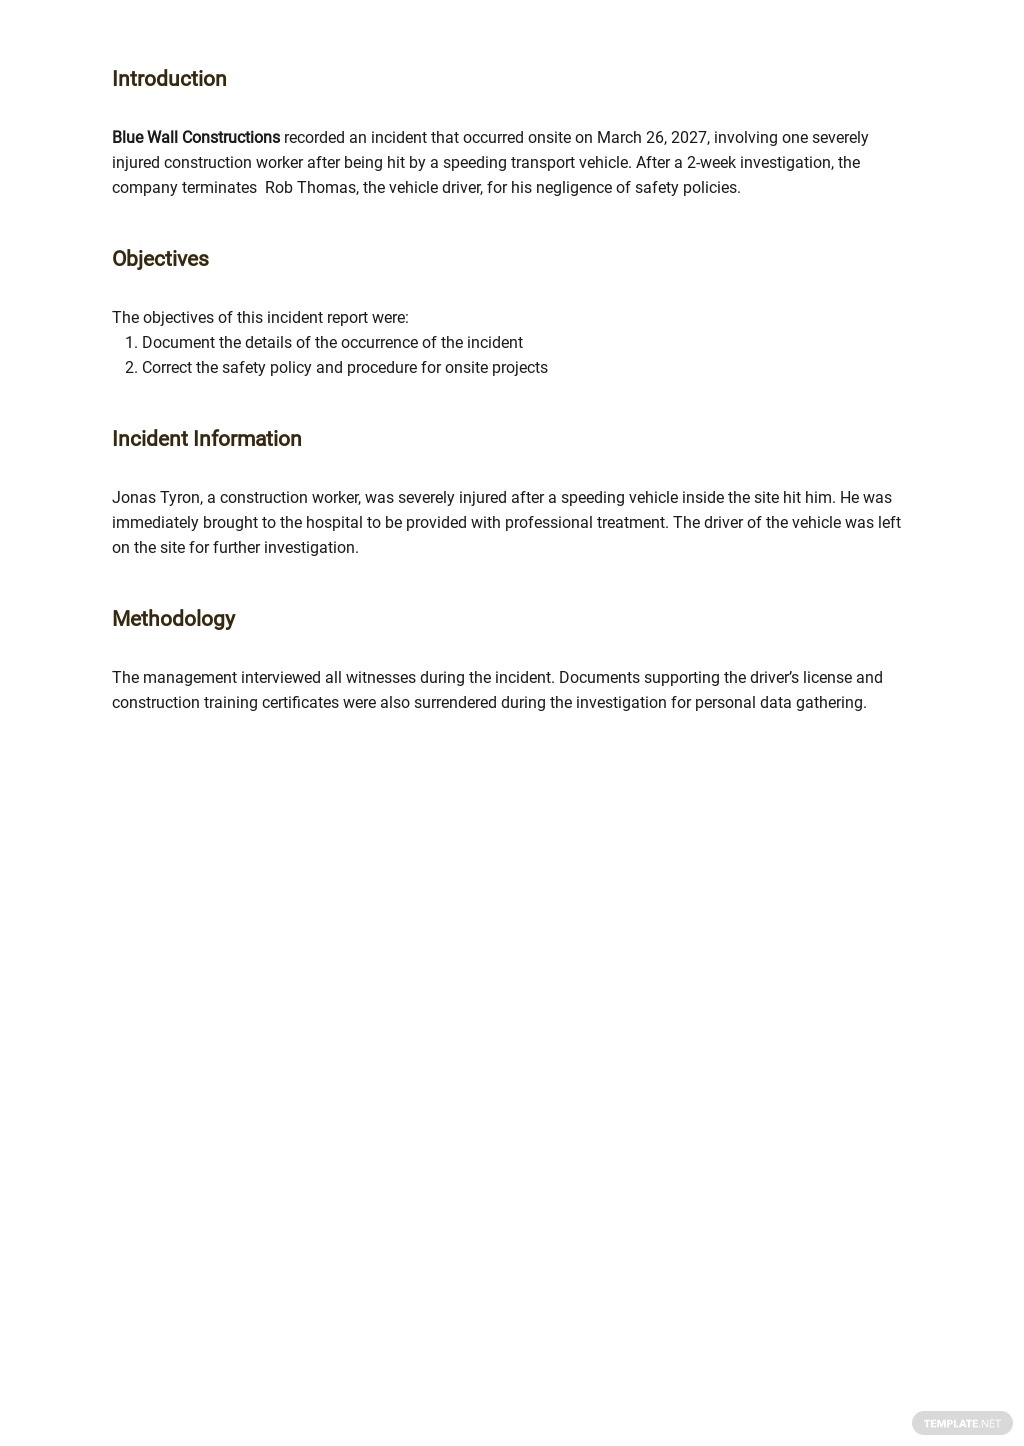 Simple Construction Incident Report Template [Free PDF] - Google Docs, Word